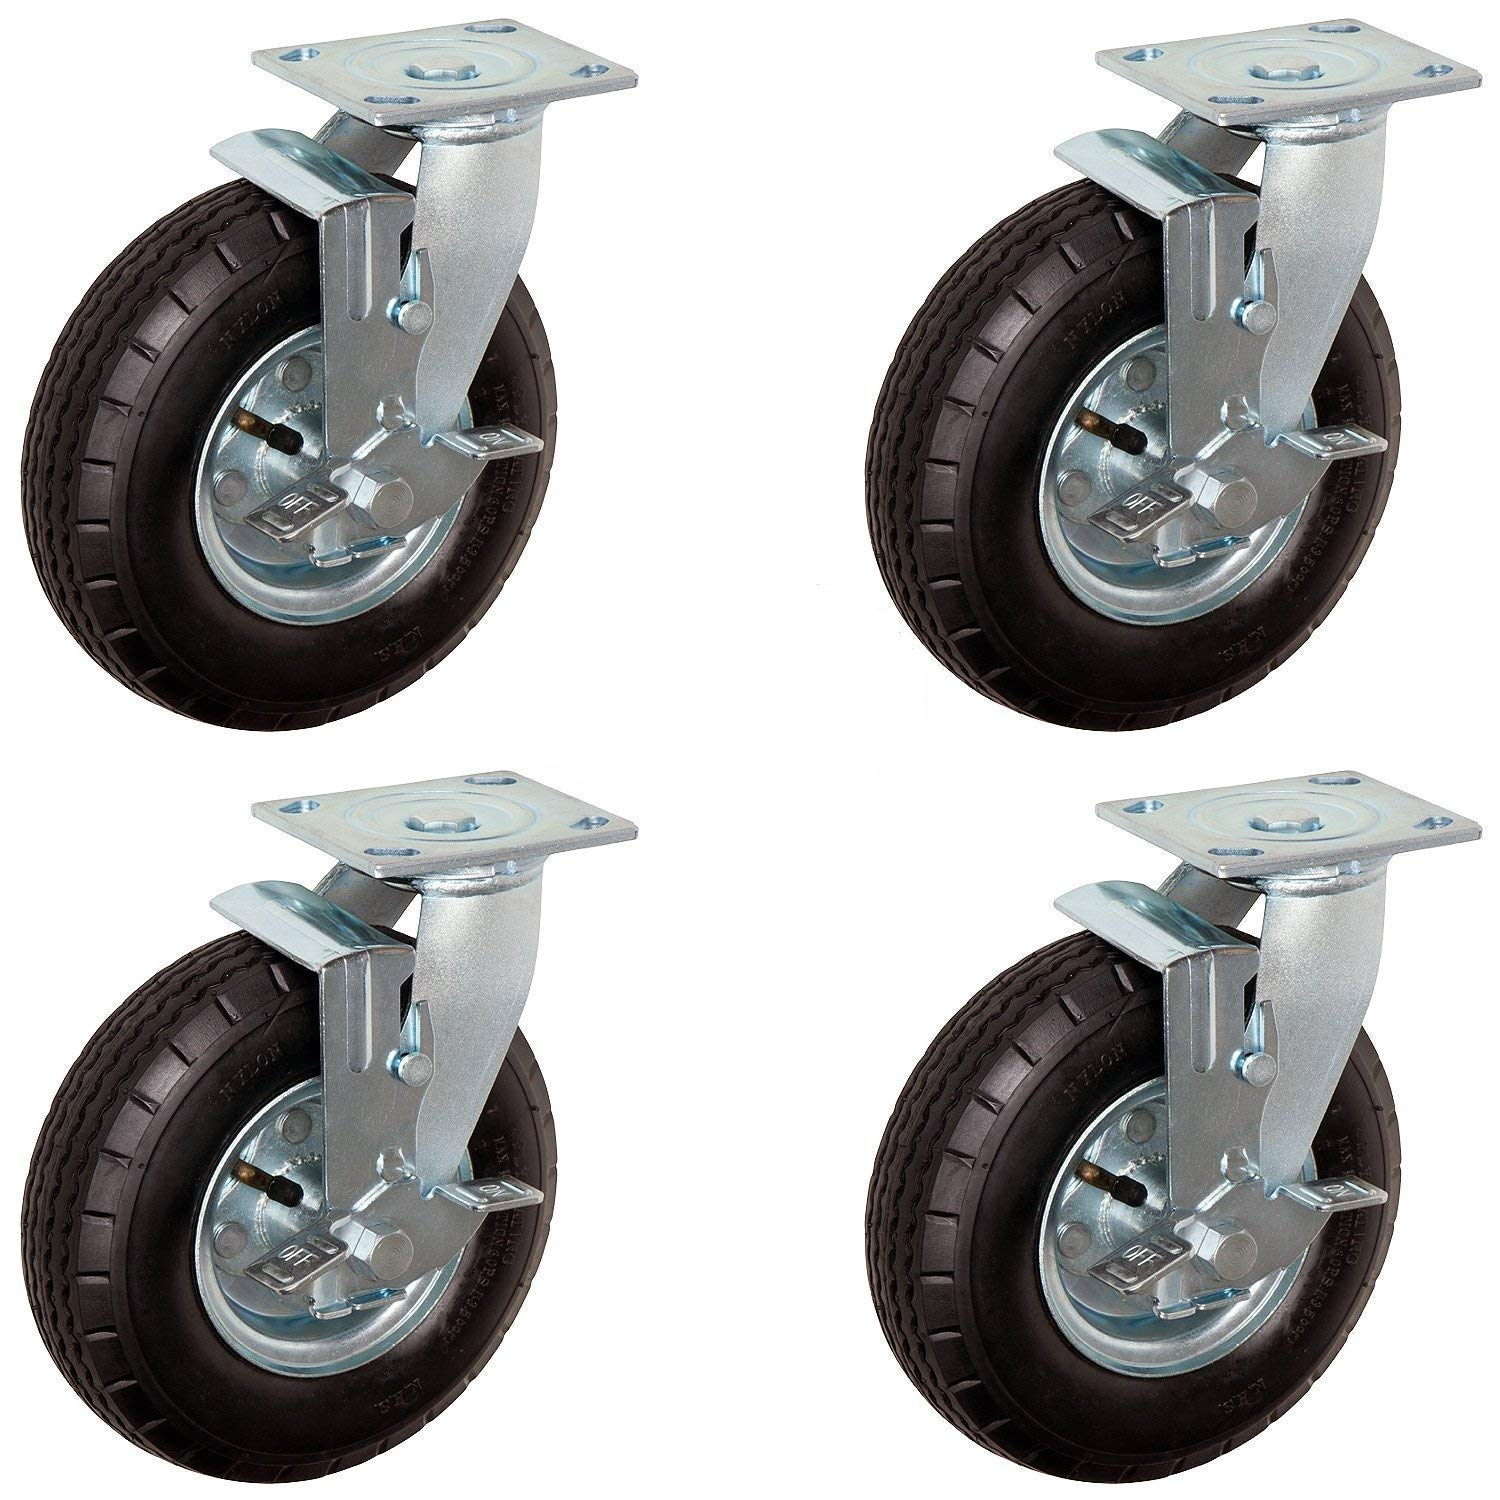 """CasterHQ 8"""" x 2.5"""" Swivel Set of 4 Pneumatic Caster - 4 PLY - 250 lbs per / 1000 lbs per Set Capacity - Air Filled - Commercial/Industrial Application - 8 inch - Shock Absorption -"""